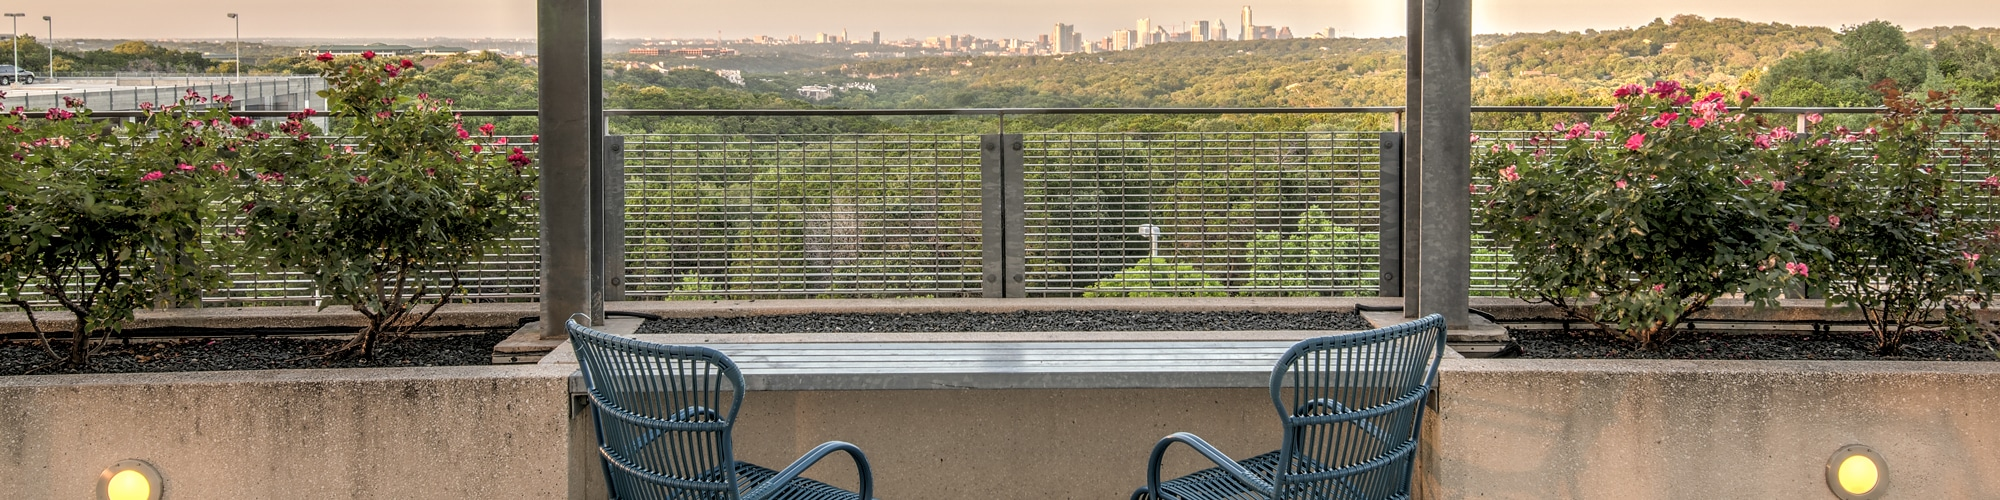 The Terrace Downtown View | 2600 Via Fortuna Drive in Austin, Texas